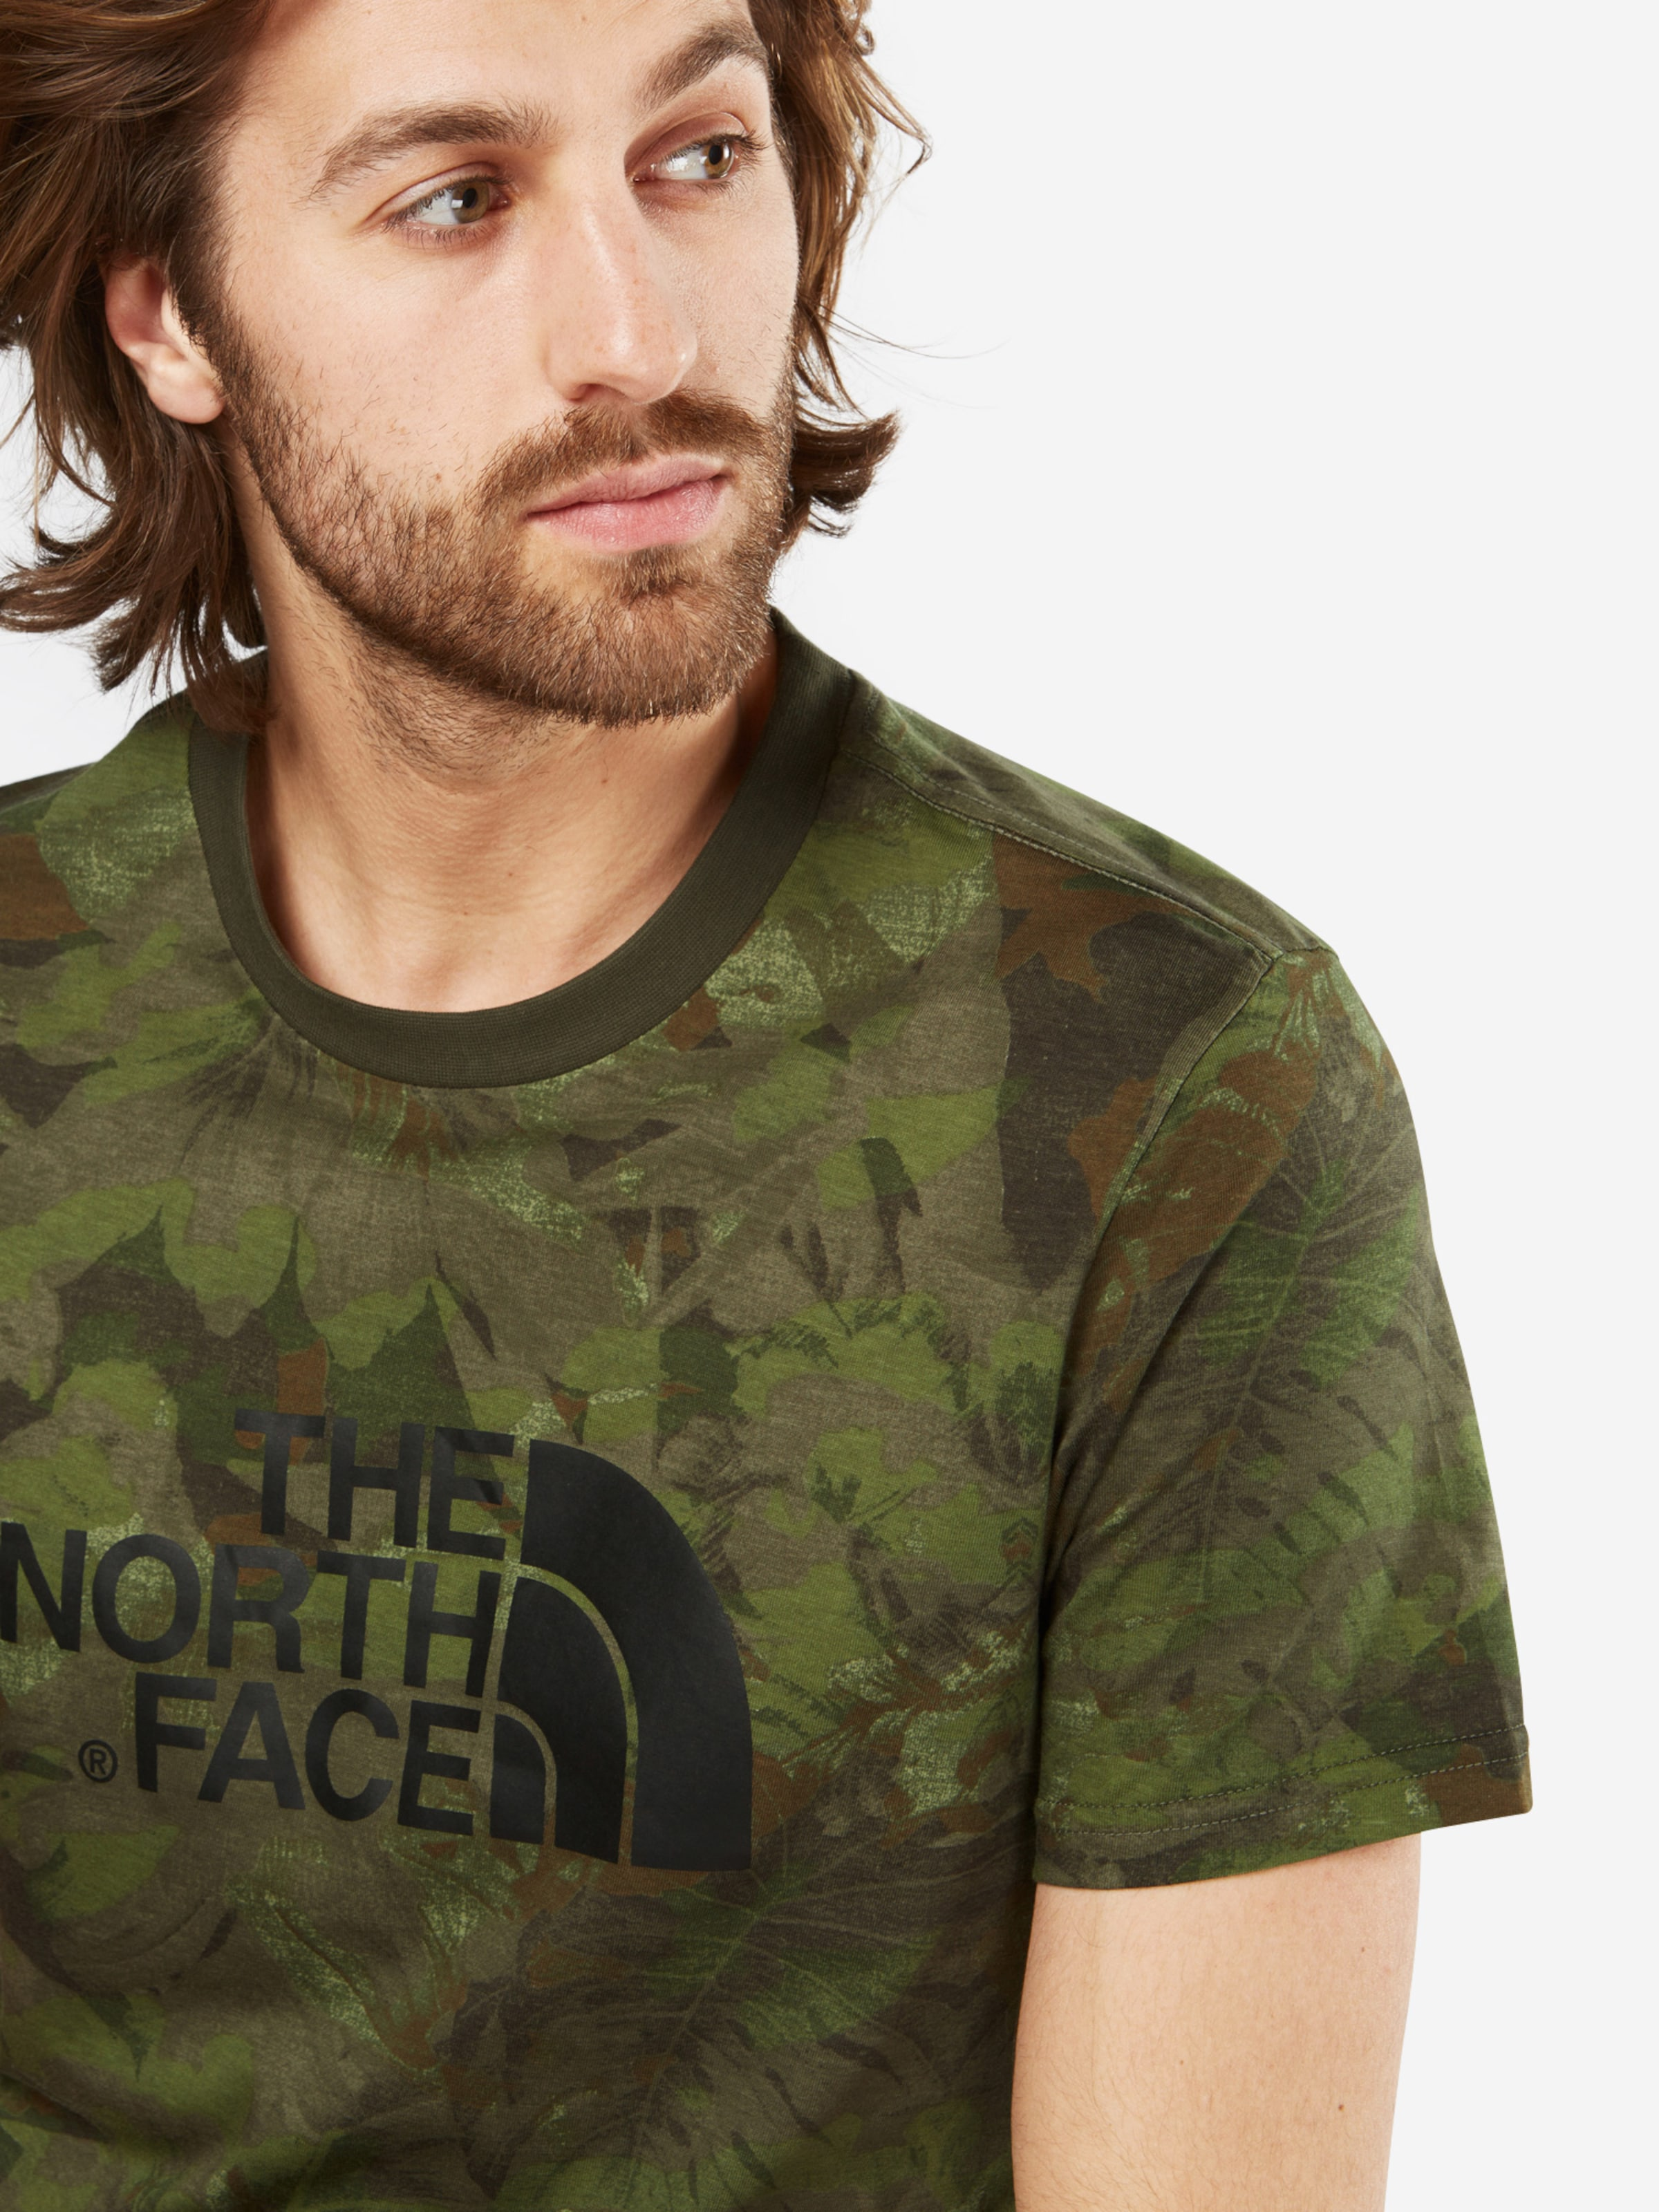 Logo T FACE mit NORTH THE NORTH THE Shirt nOxnS0c